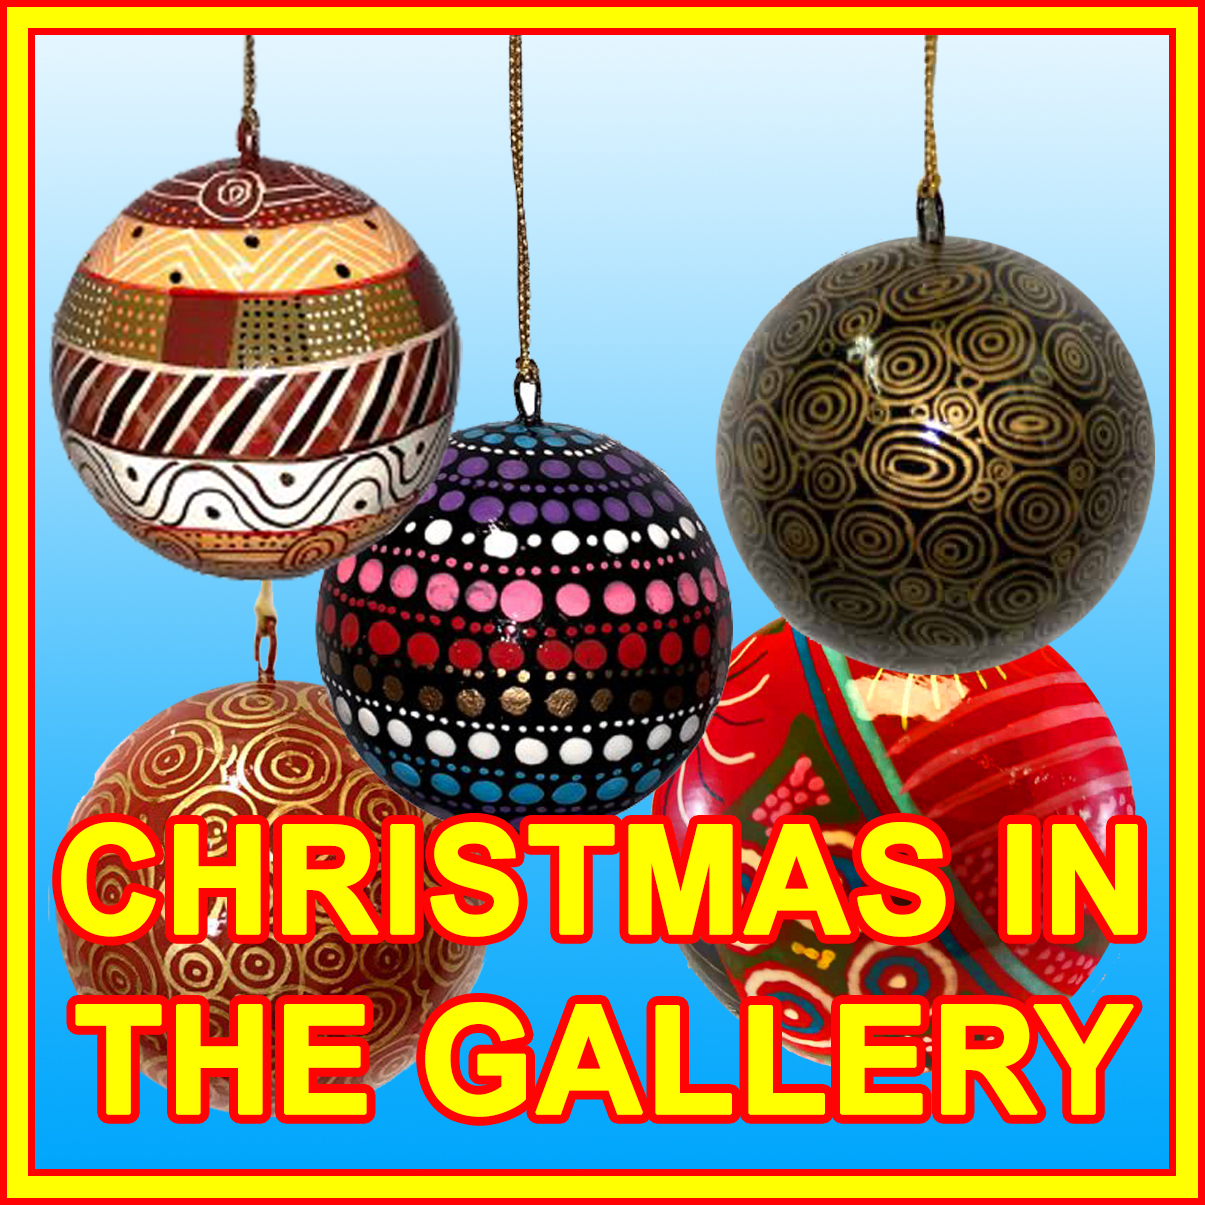 GALLERY CHRISTMAS